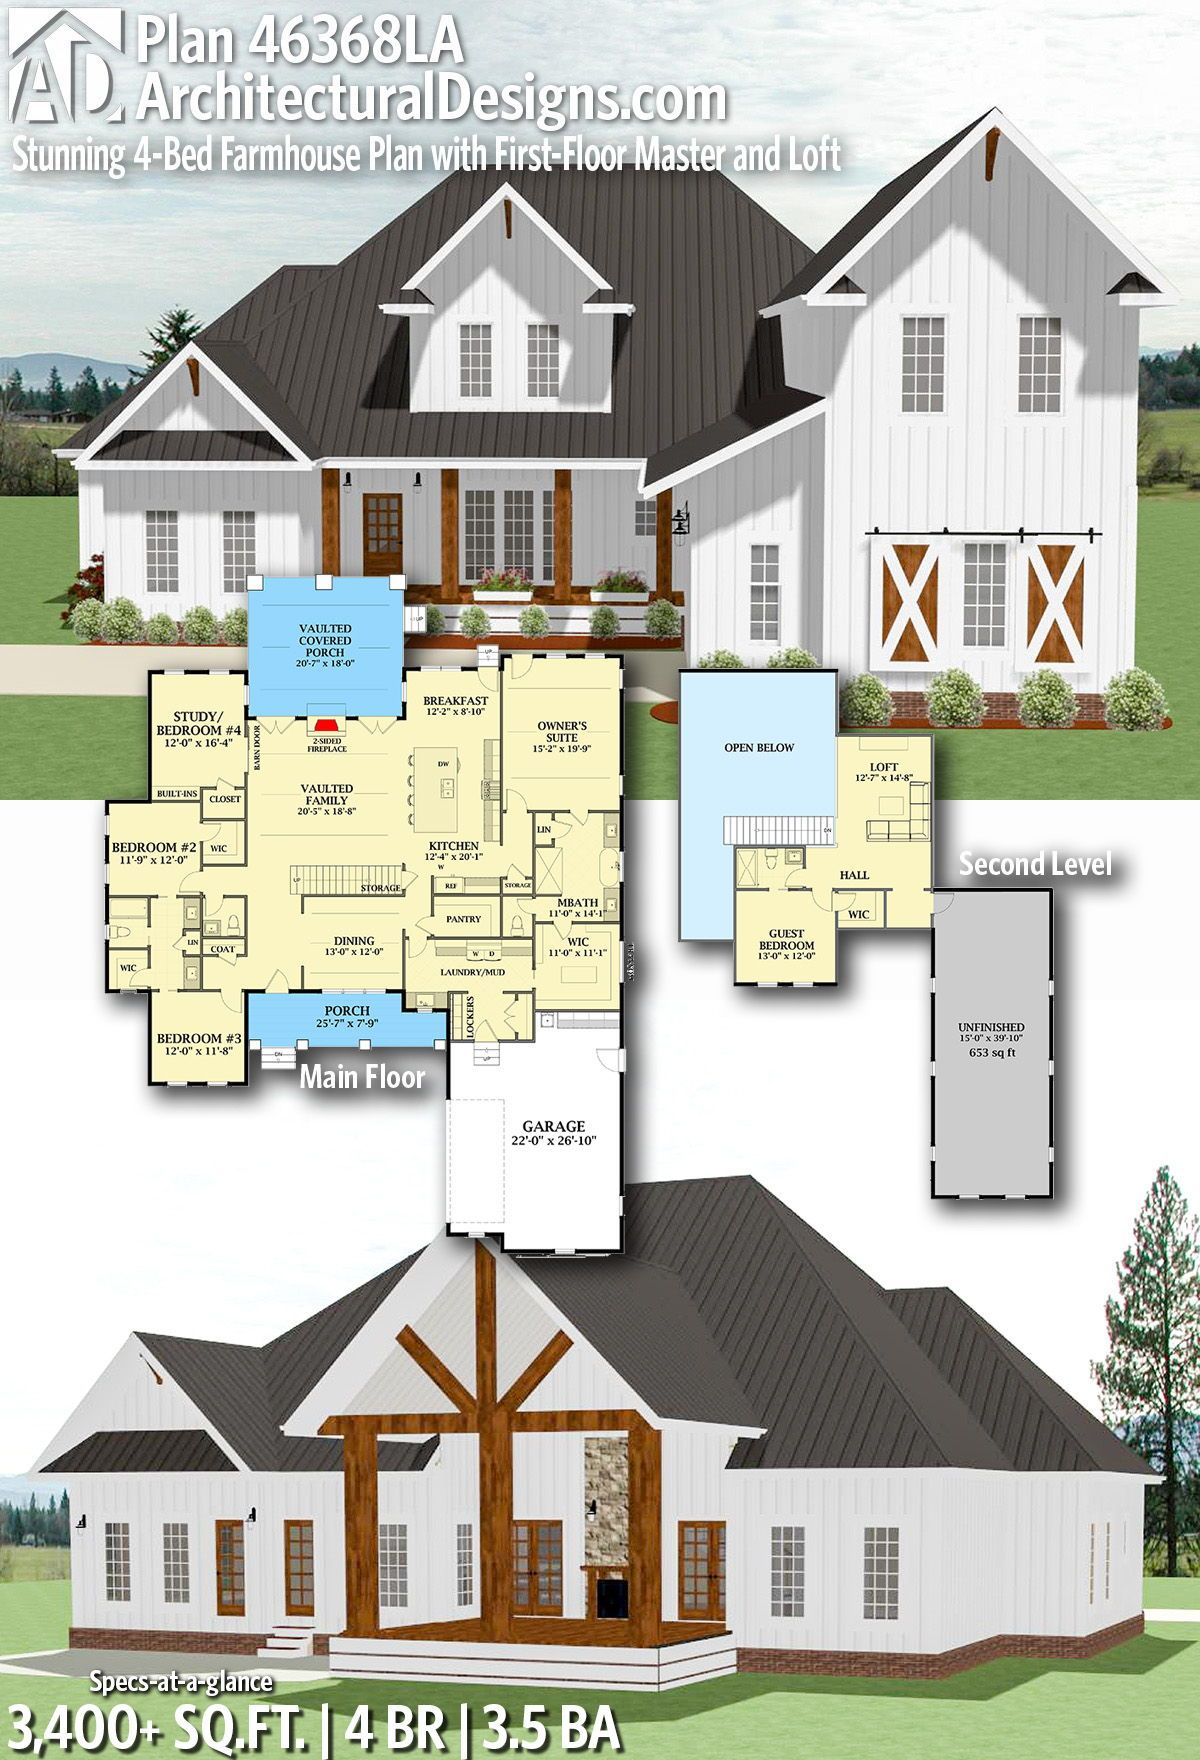 Plan 46368la Stunning 4 Bed Farmhouse Plan With First Floor Master And Loft Farmhouse Plans Farm House Living Room House Plans